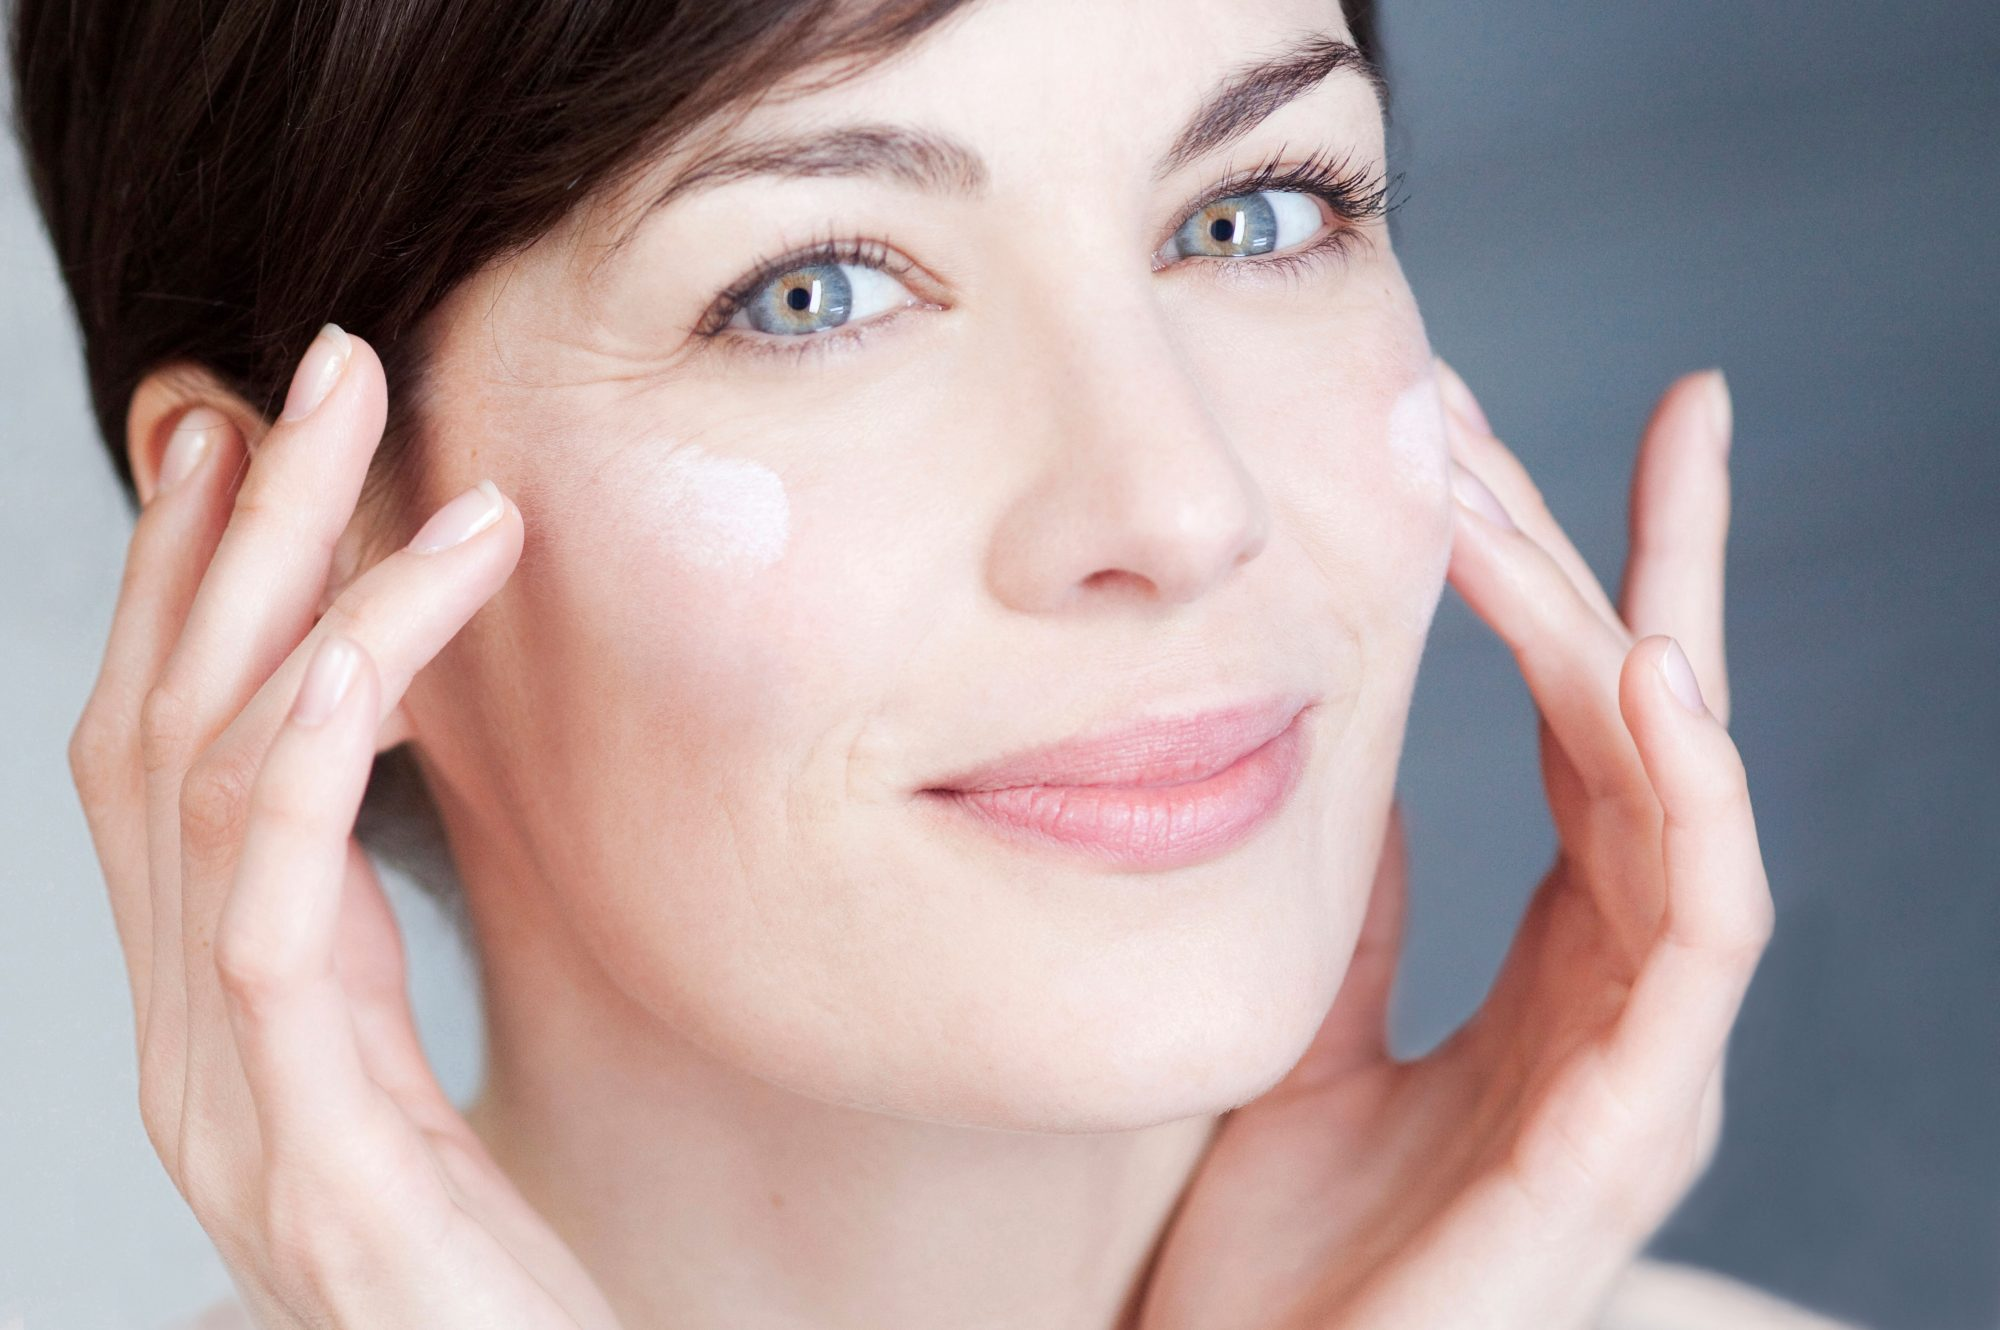 Why You Need To Ask Your Dermatologist About the Antiaging Benefits of Tretinoin